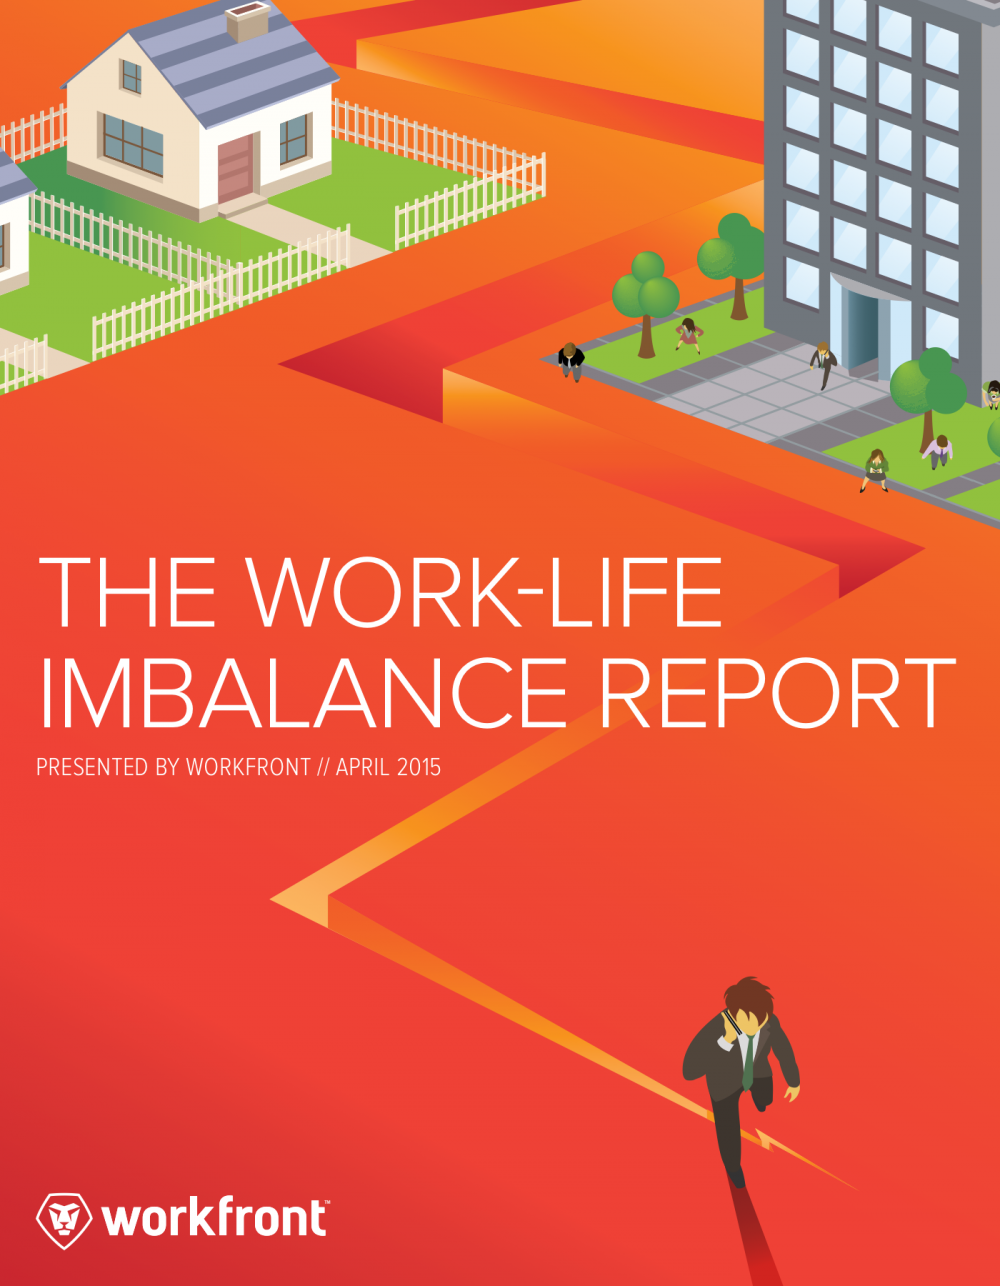 The Work-Life Imbalance Report